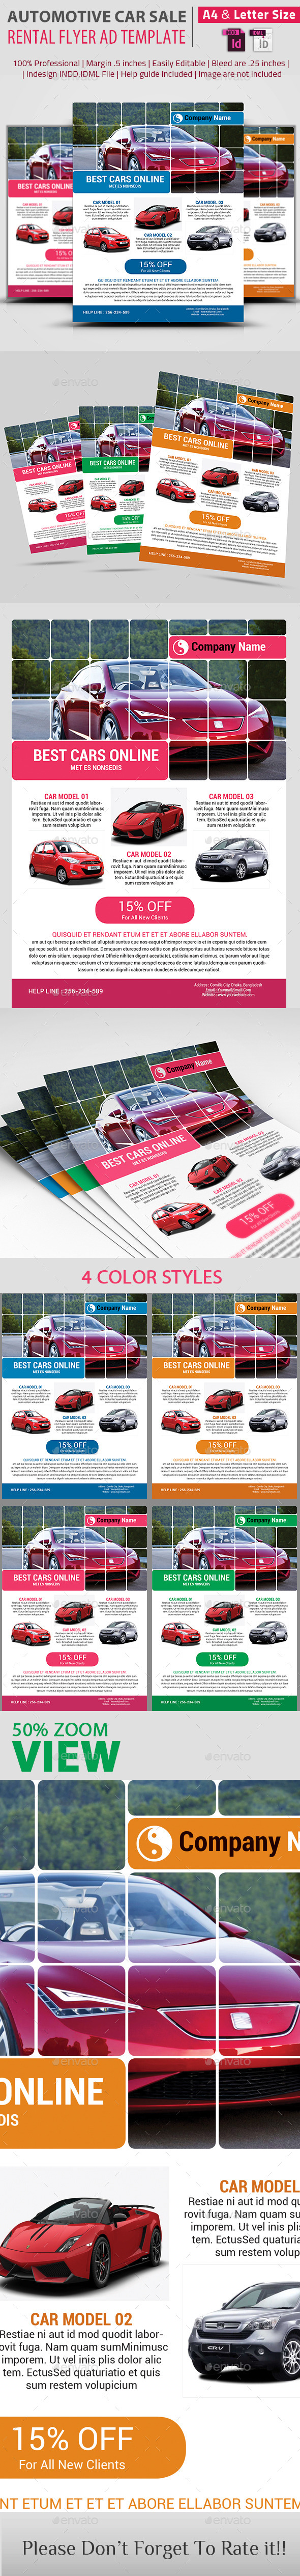 GraphicRiver Automotive Car Sale Rental Flyer Ad Template 9908103